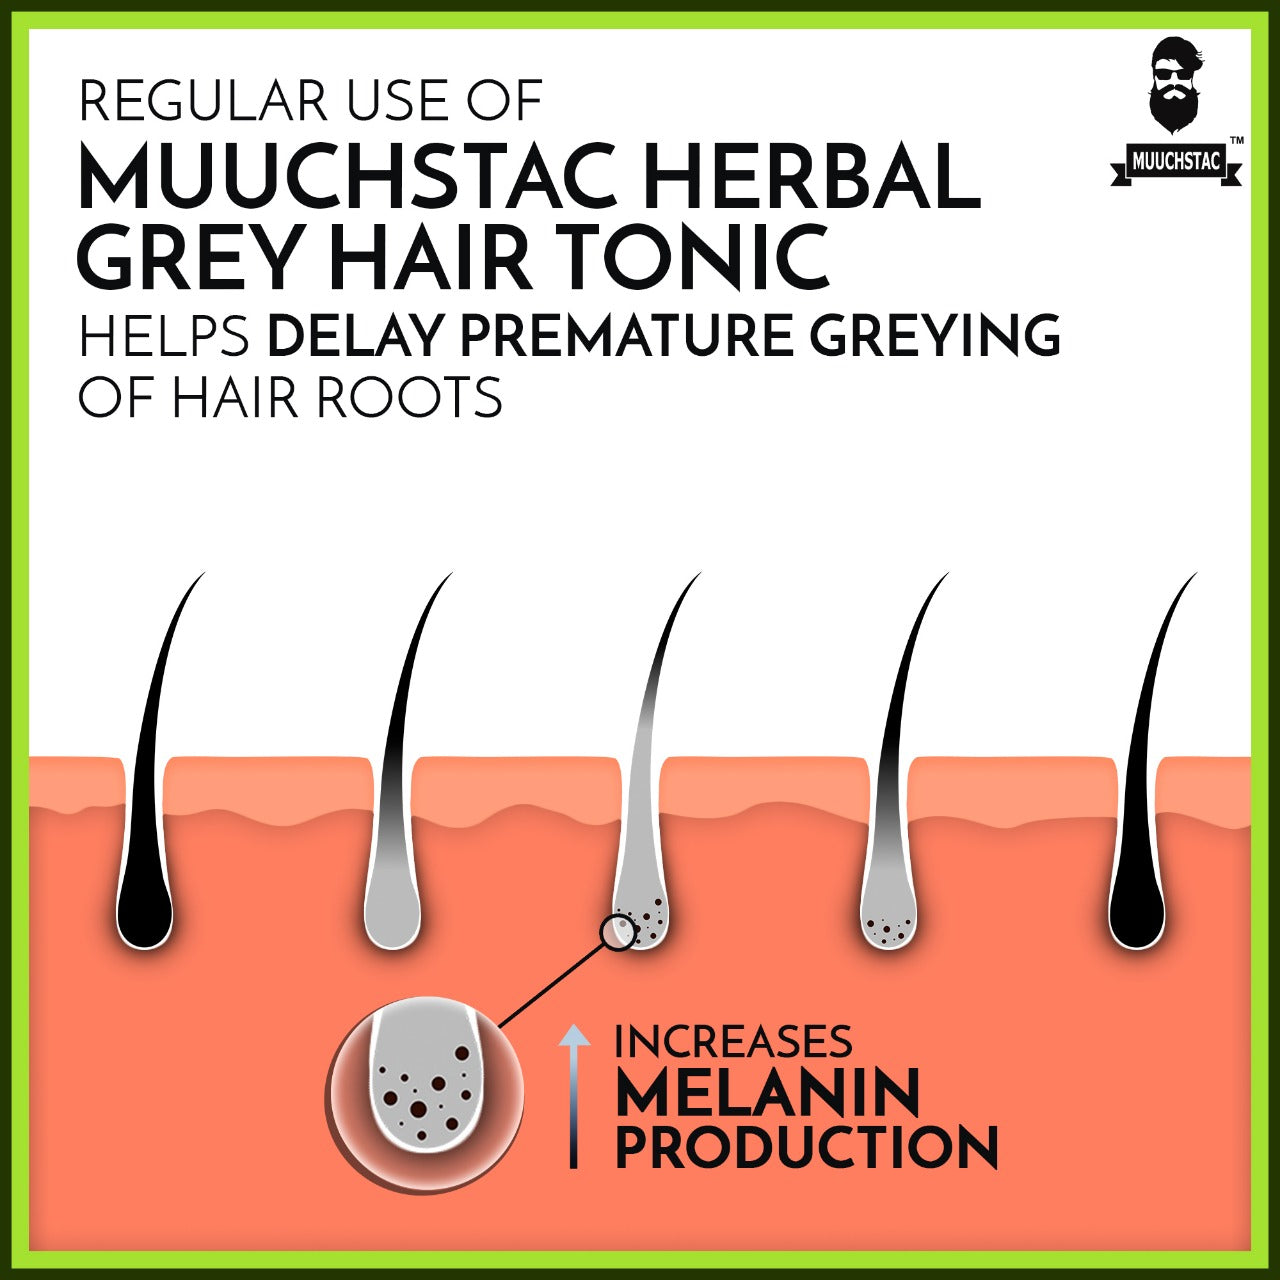 Muuchstac Herbal Grey Hair Tonic, 100 ml, helps delay premature Greying of Hair Root